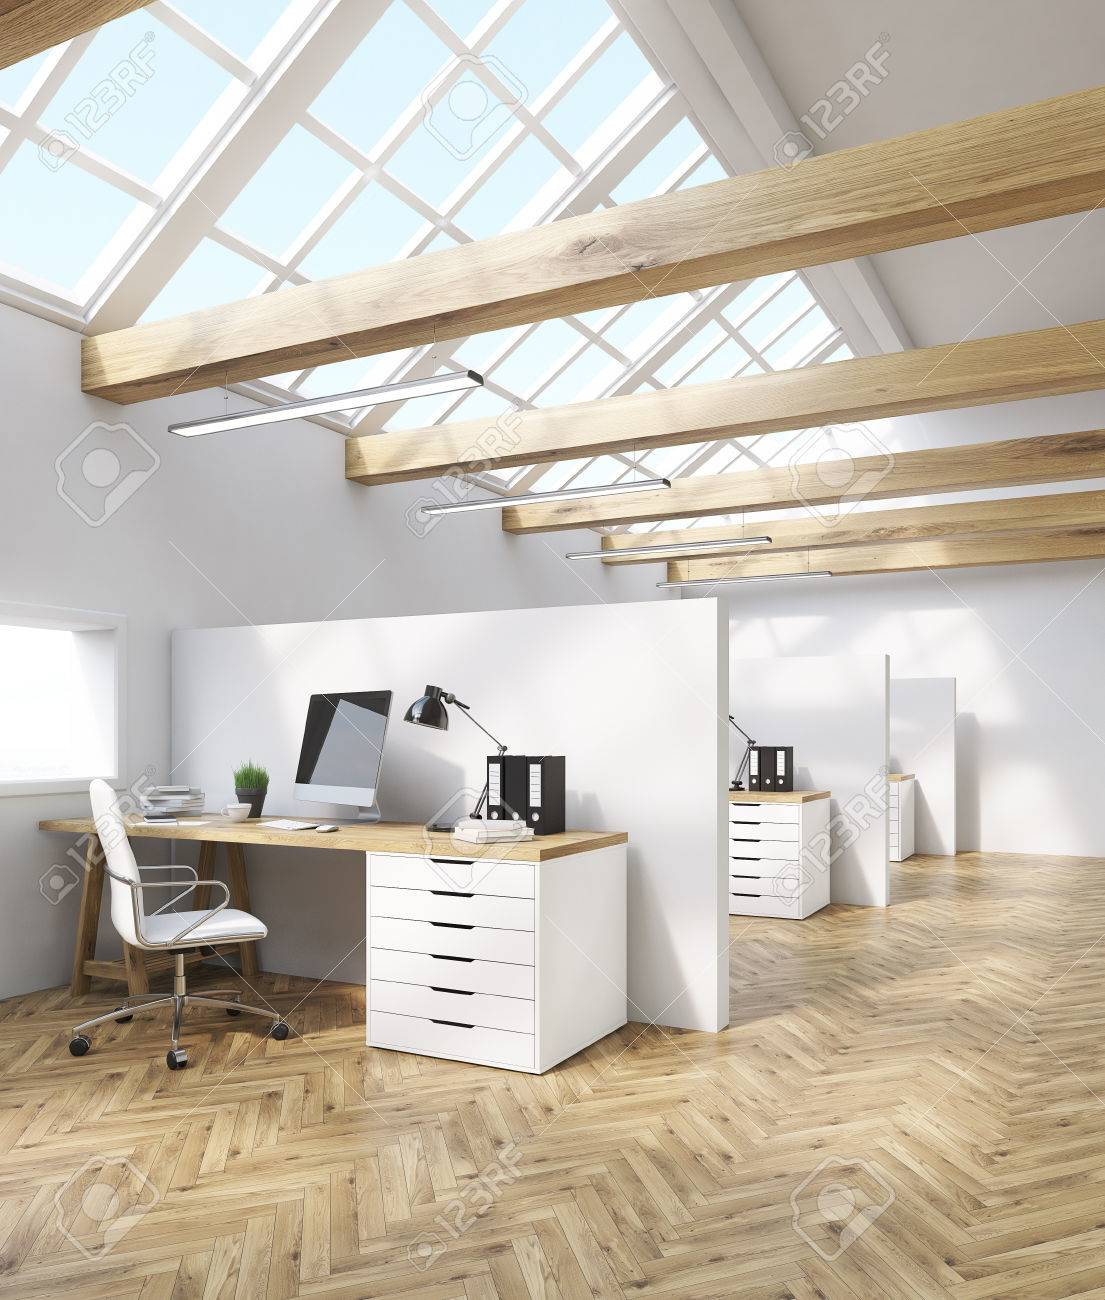 Cubicles in office in attic. Wooden beams computer tables with desktops and leather armchairs & Cubicles In Office In Attic. Wooden Beams Computer Tables With ...